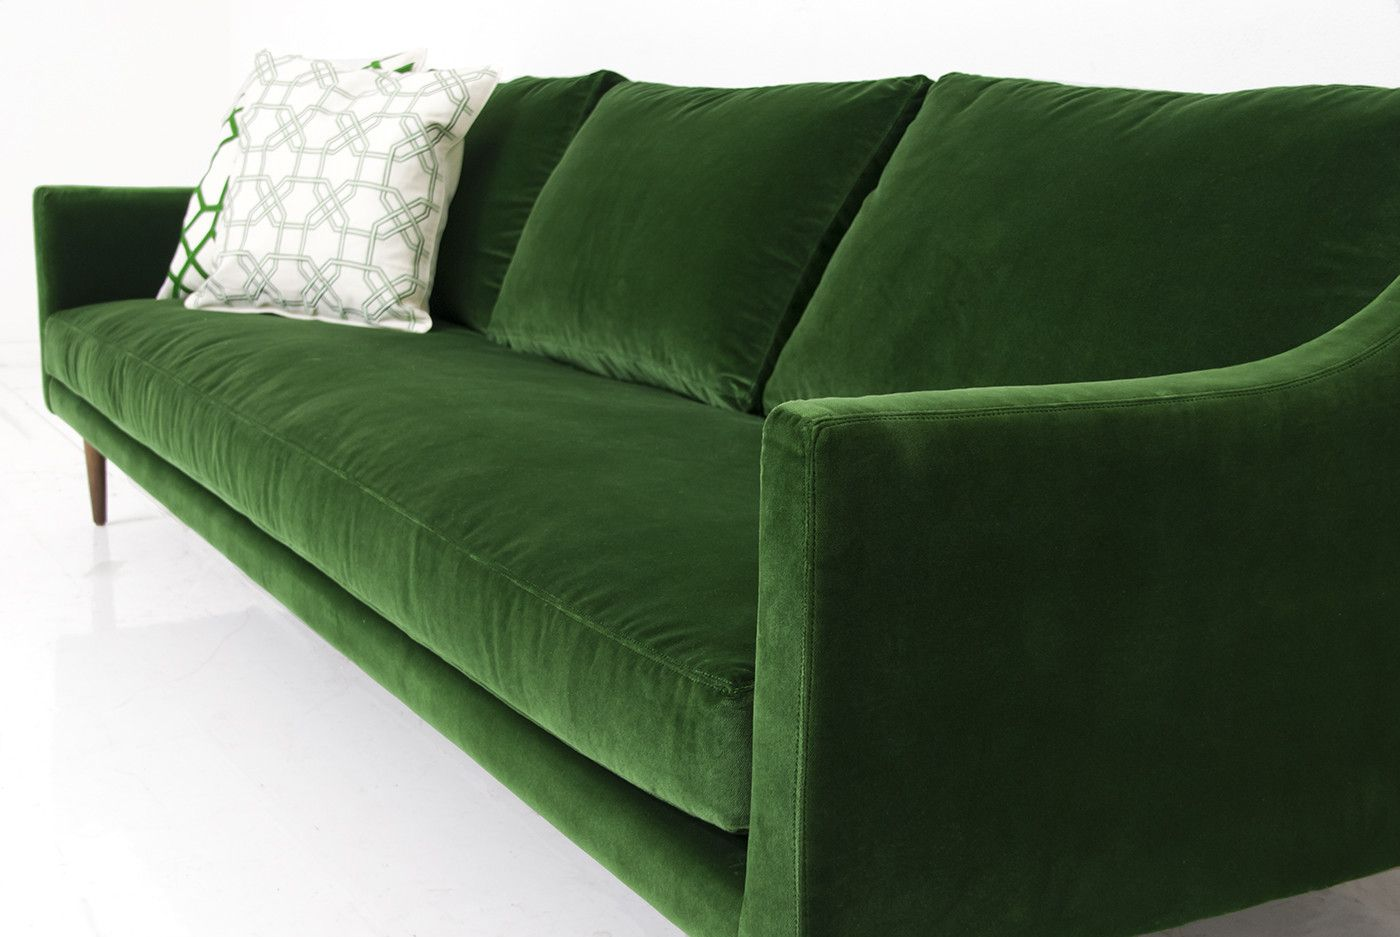 Emerald Corner Sofa Bed Cheap Sleeper Naples In Green Velvet New House Ideas